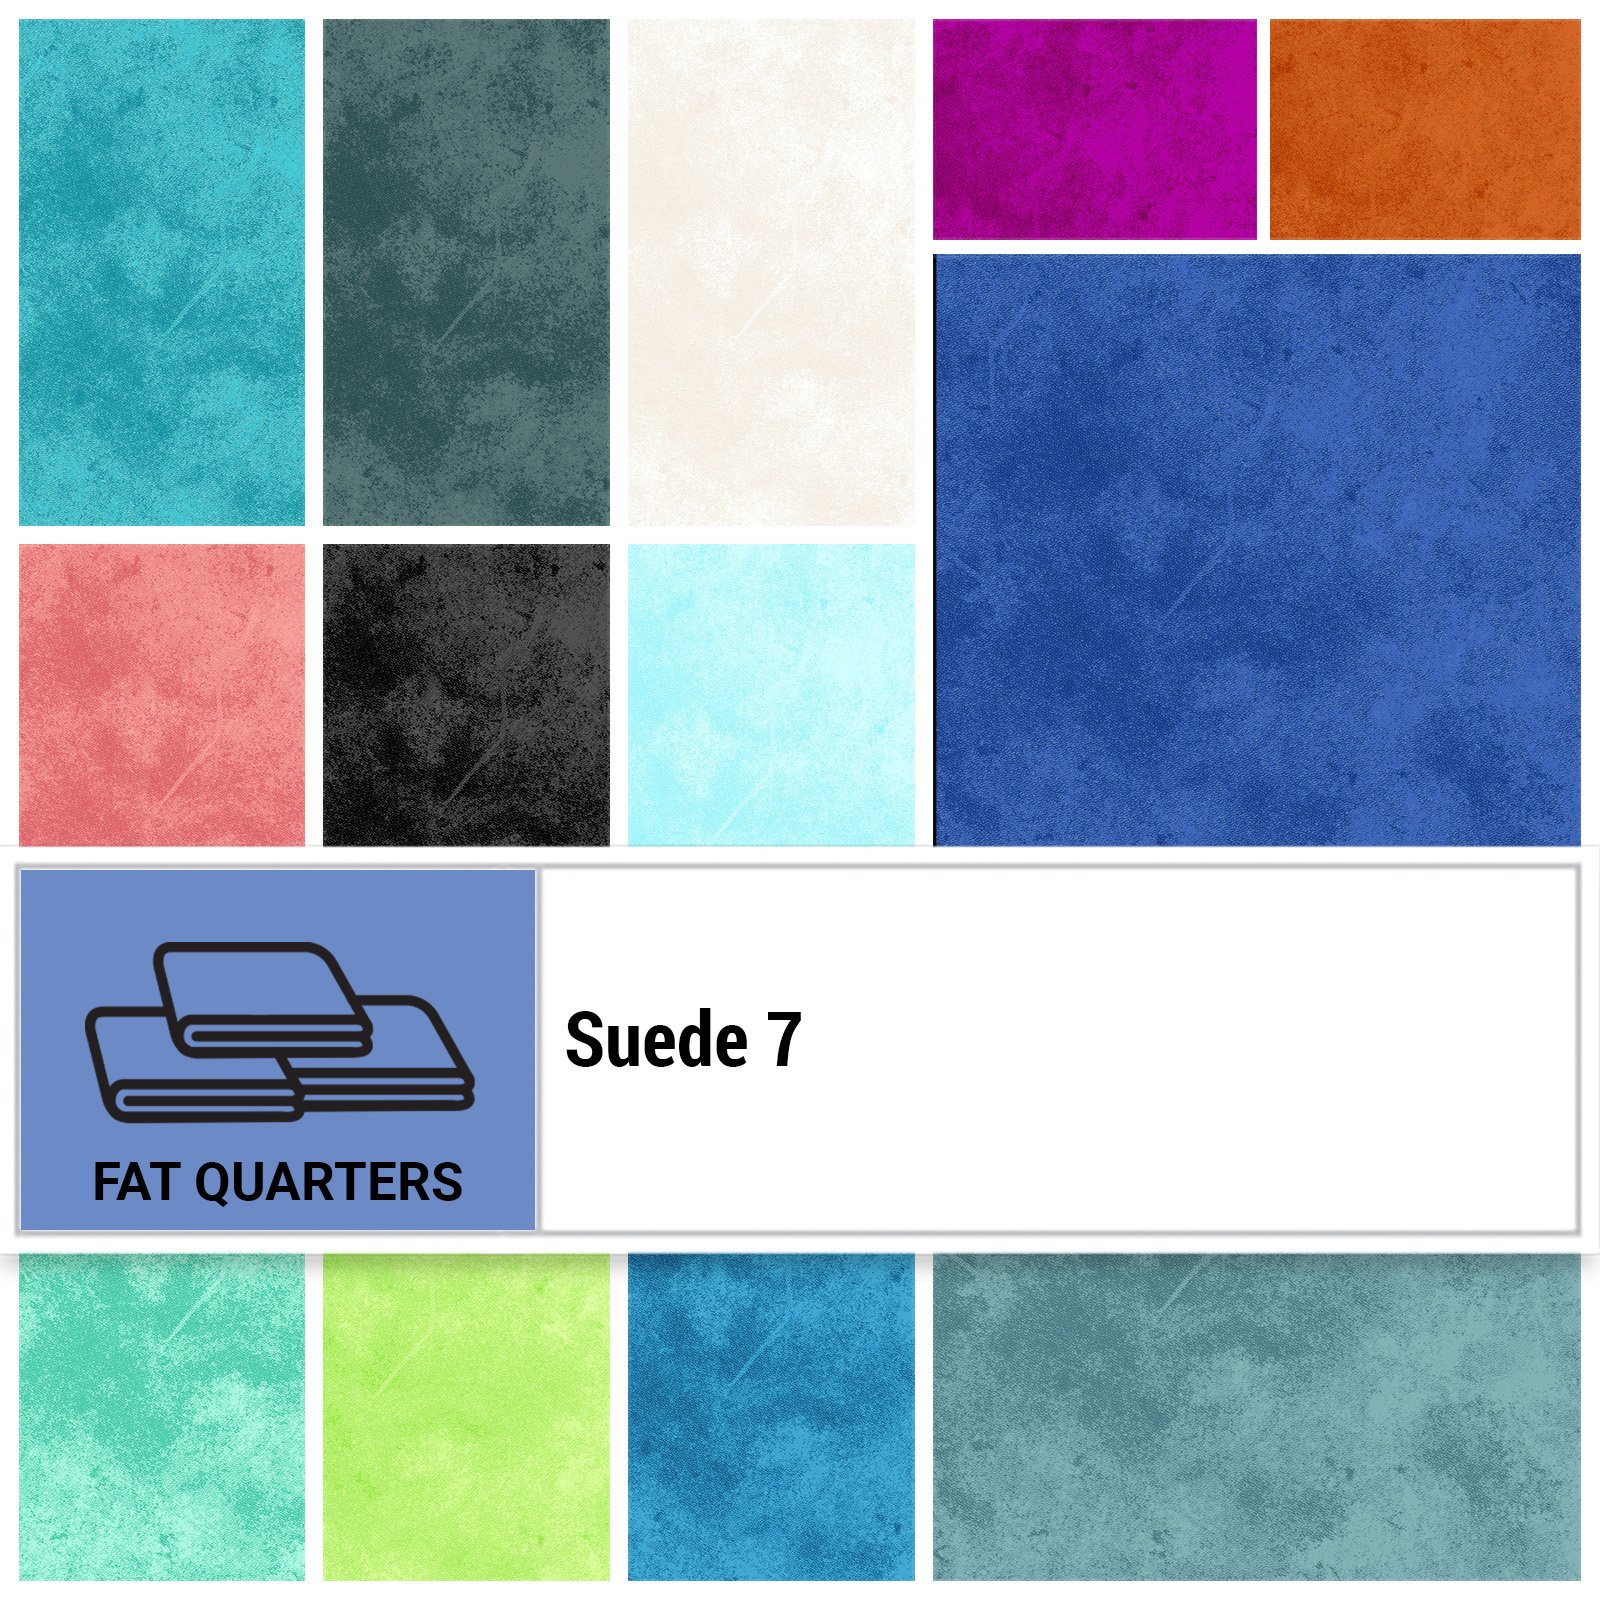 SUE7-18X22 - SUEDE 7 FAT QUARTER BUNDLE BY P&B BOUTIQUE 20PCS - ARRIVING IN AUGUST 2021